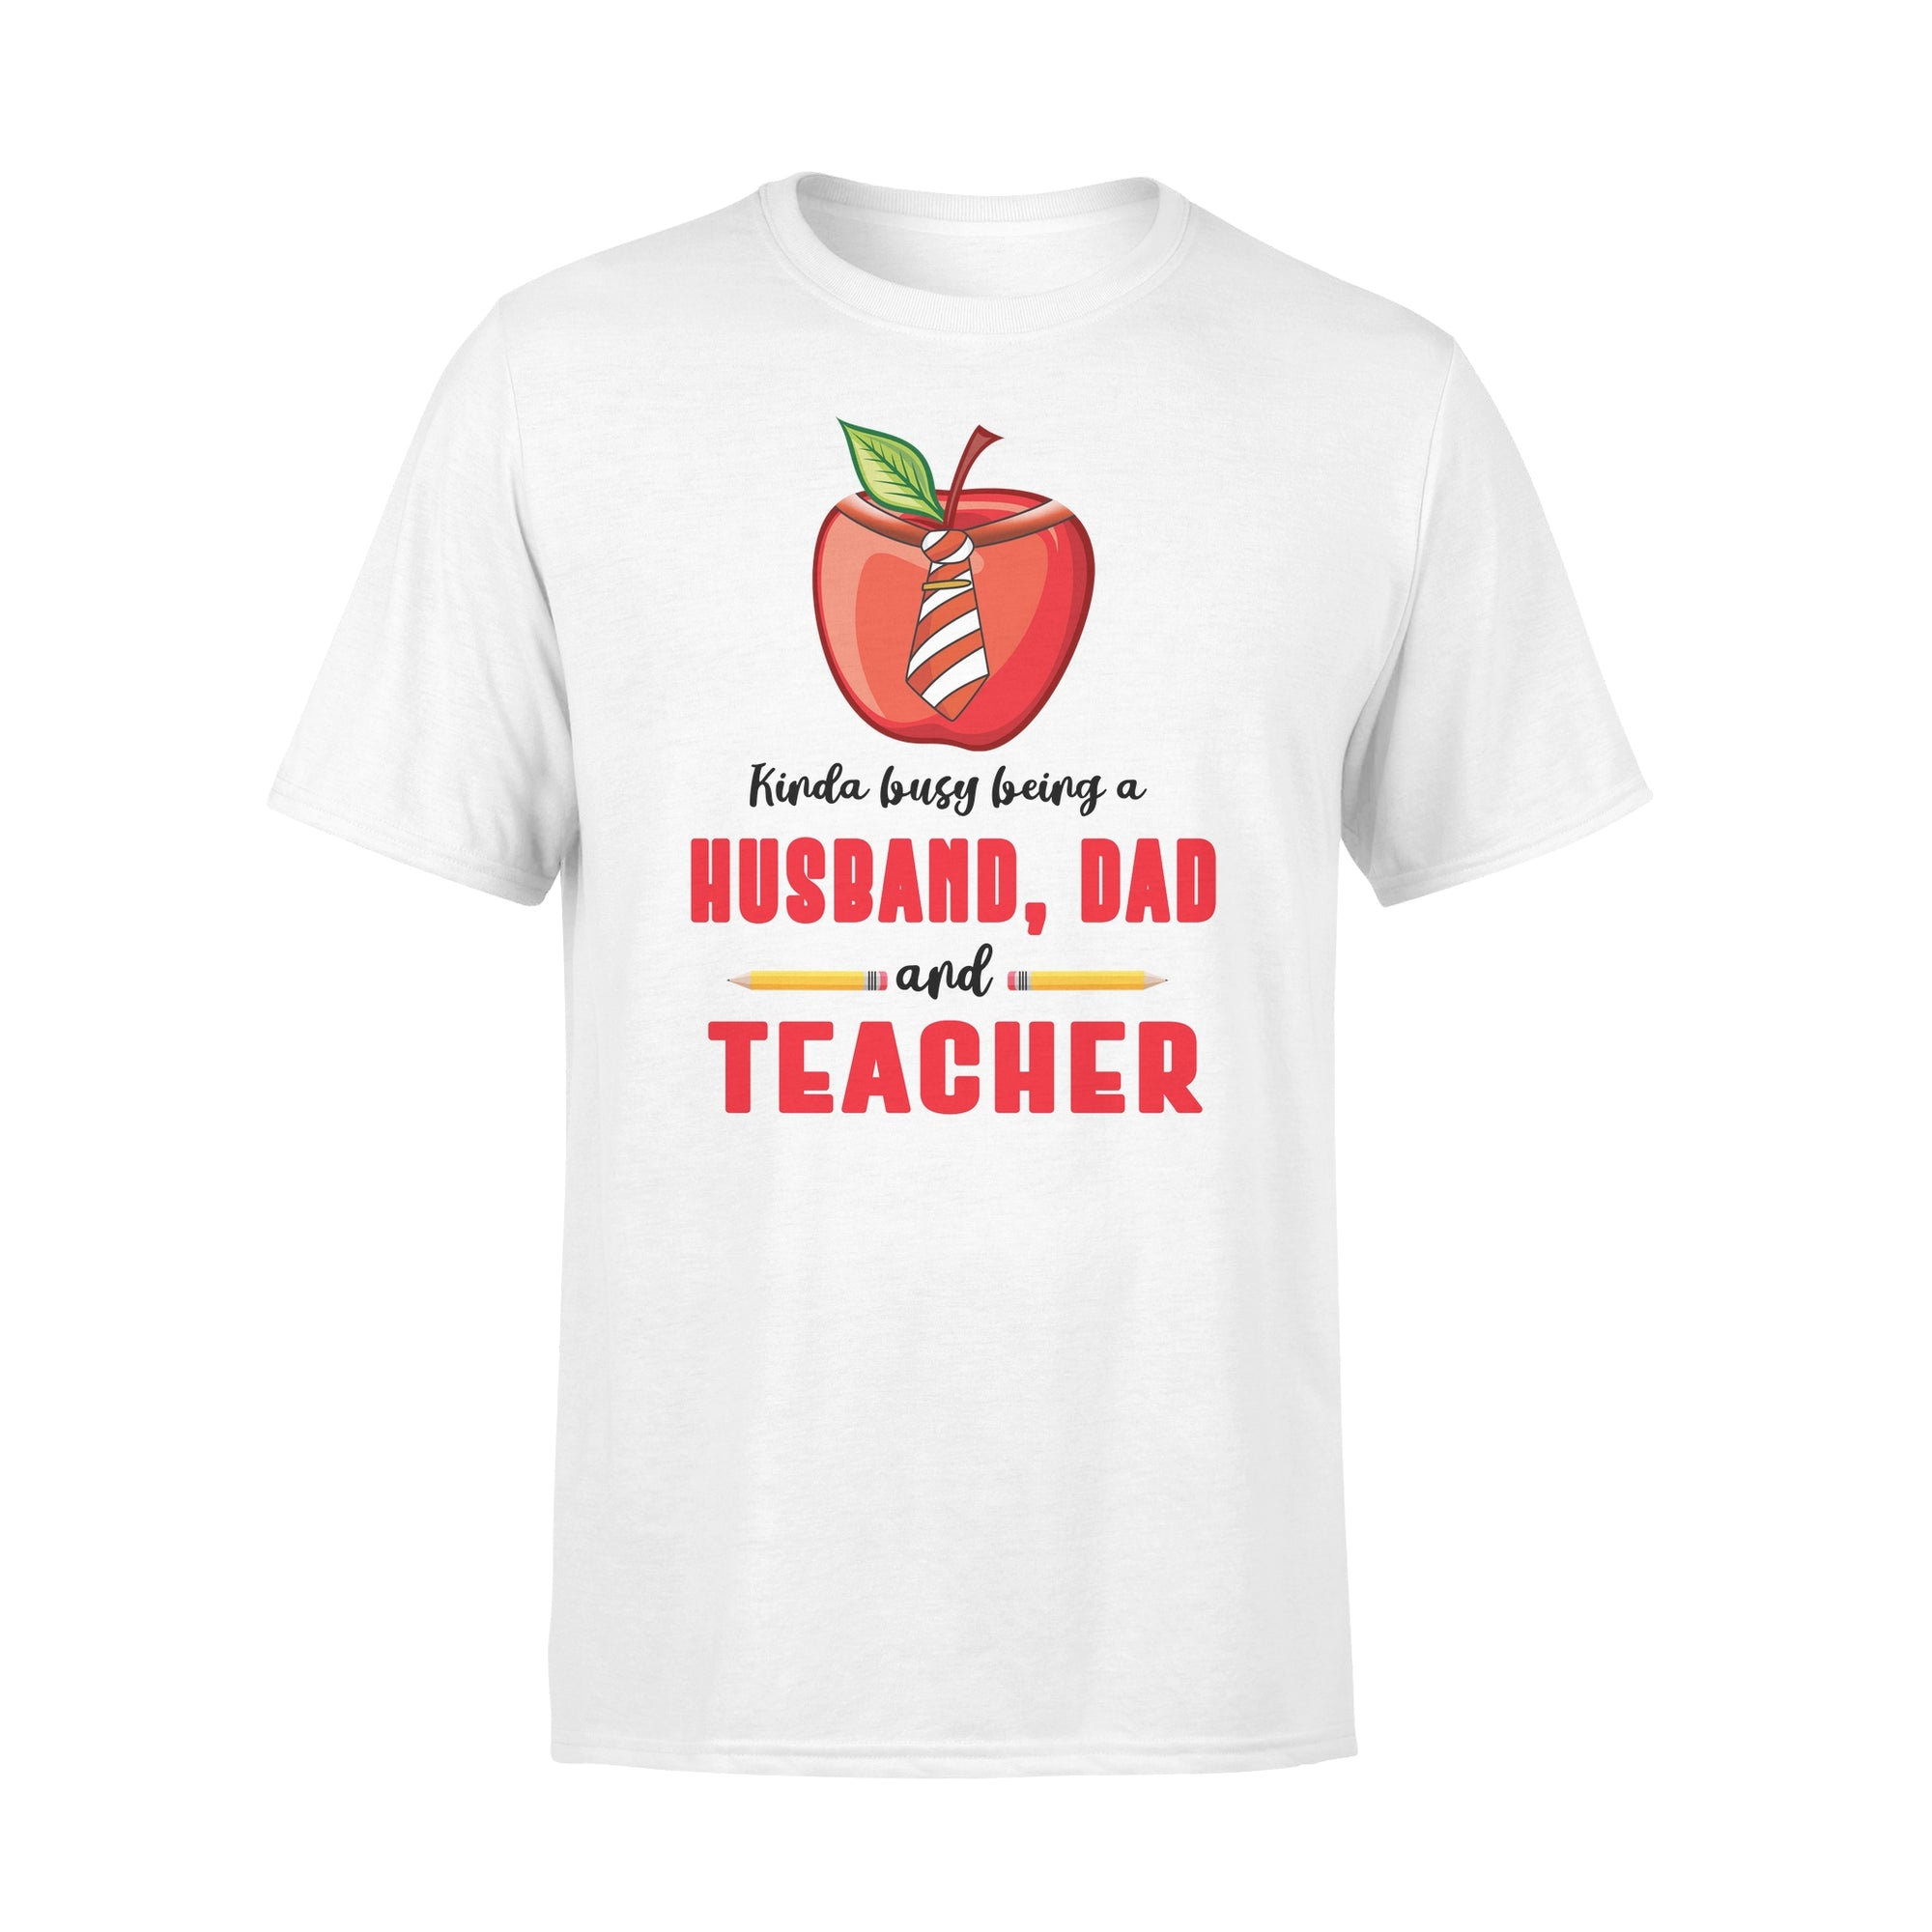 VIRA Premium Tee for awesome teachers & dads